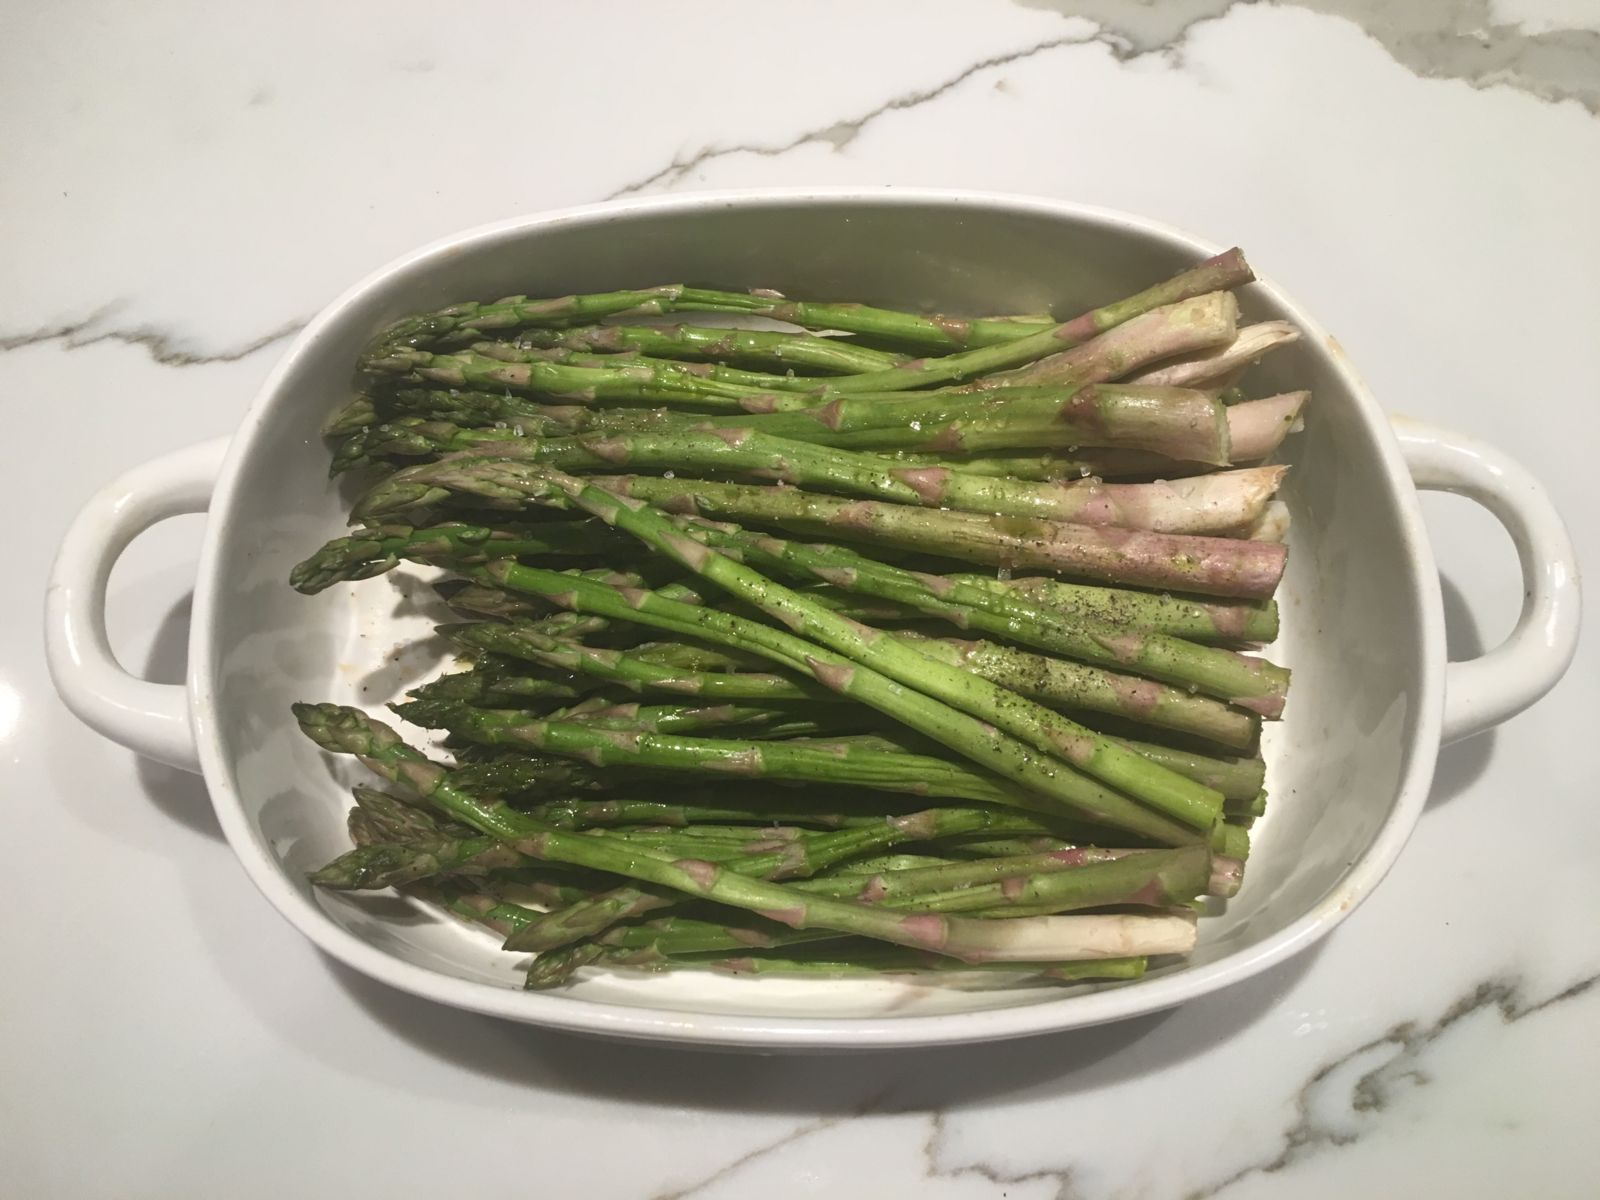 This mouth-watering asparagus is great for your diabetic meal plan, and ready in just 10 miuntes!